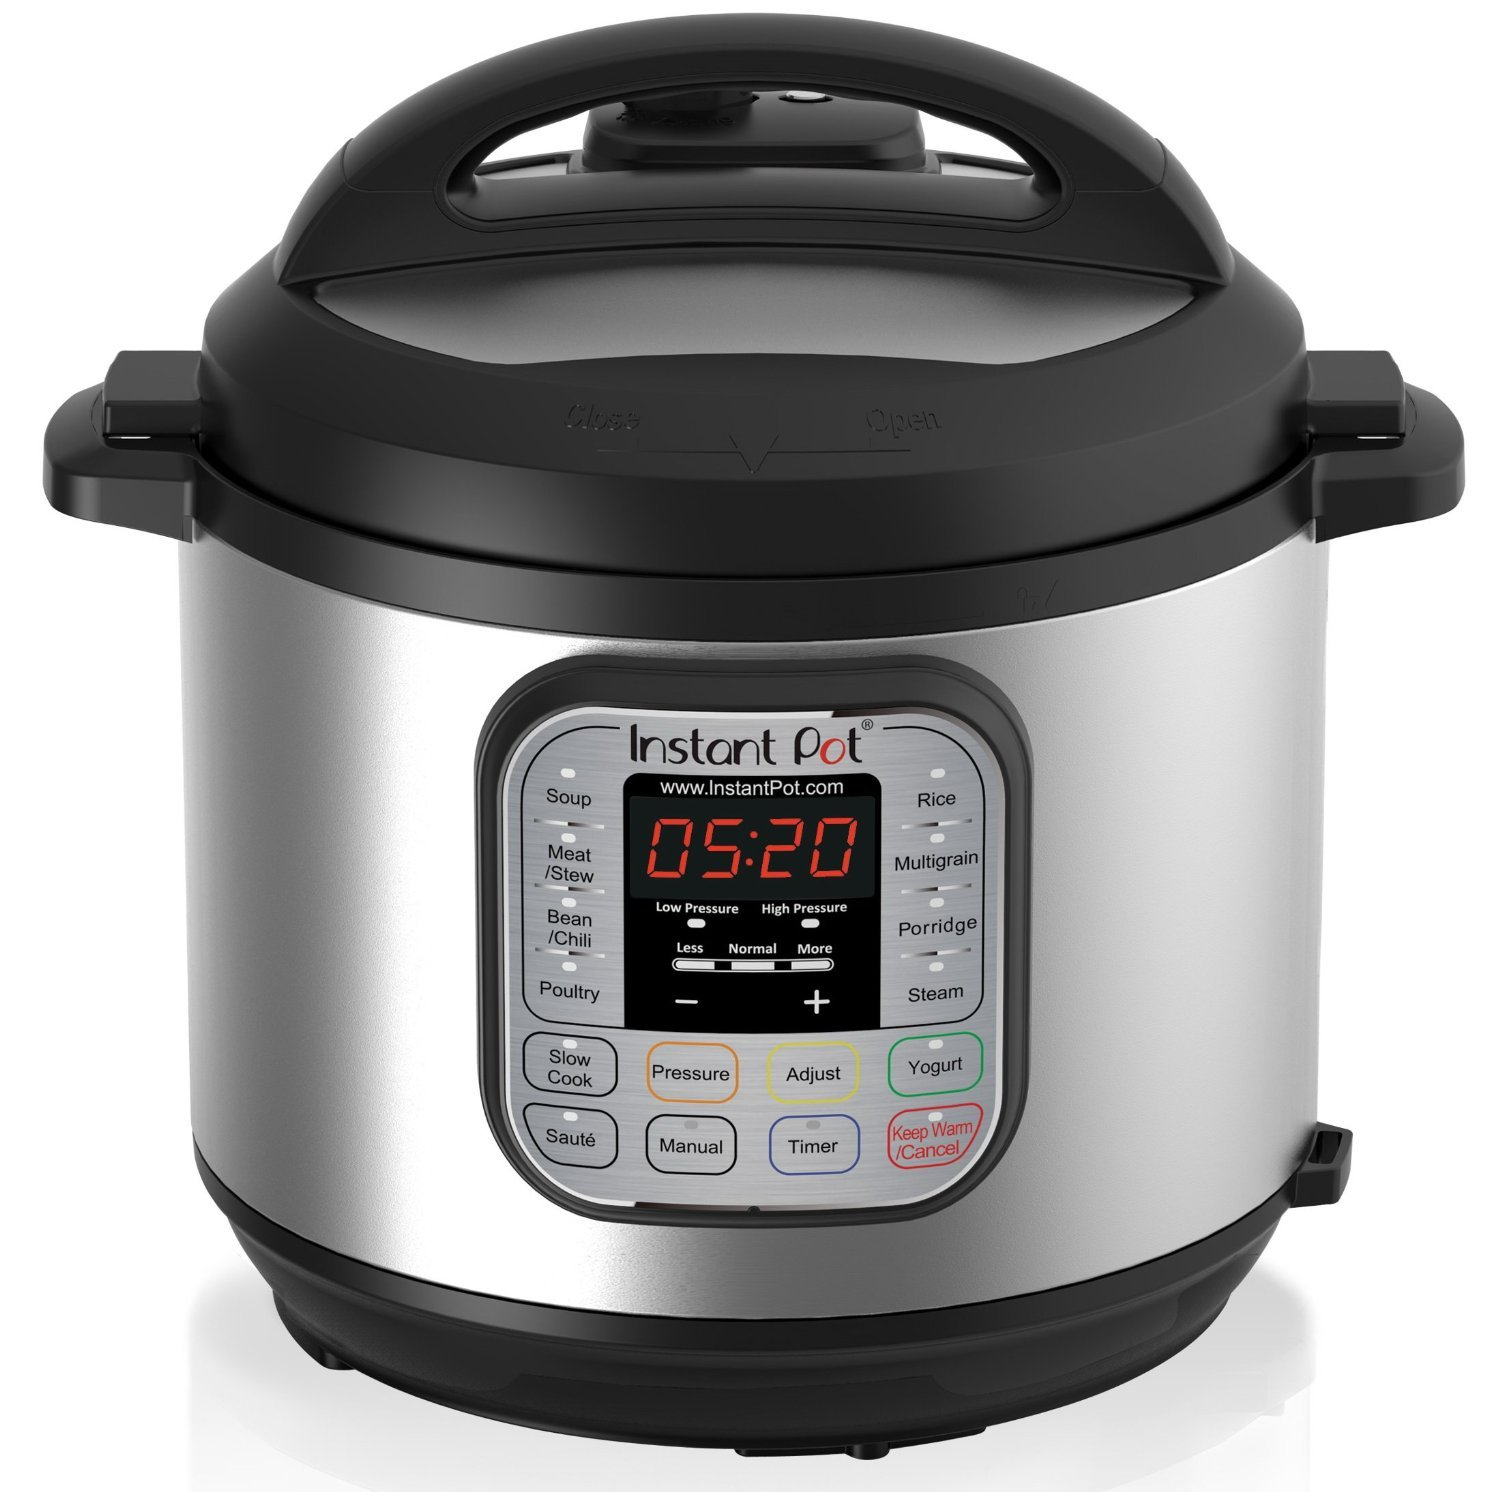 Instant Pot 7-in-1 Multi-function Pressure Cooker